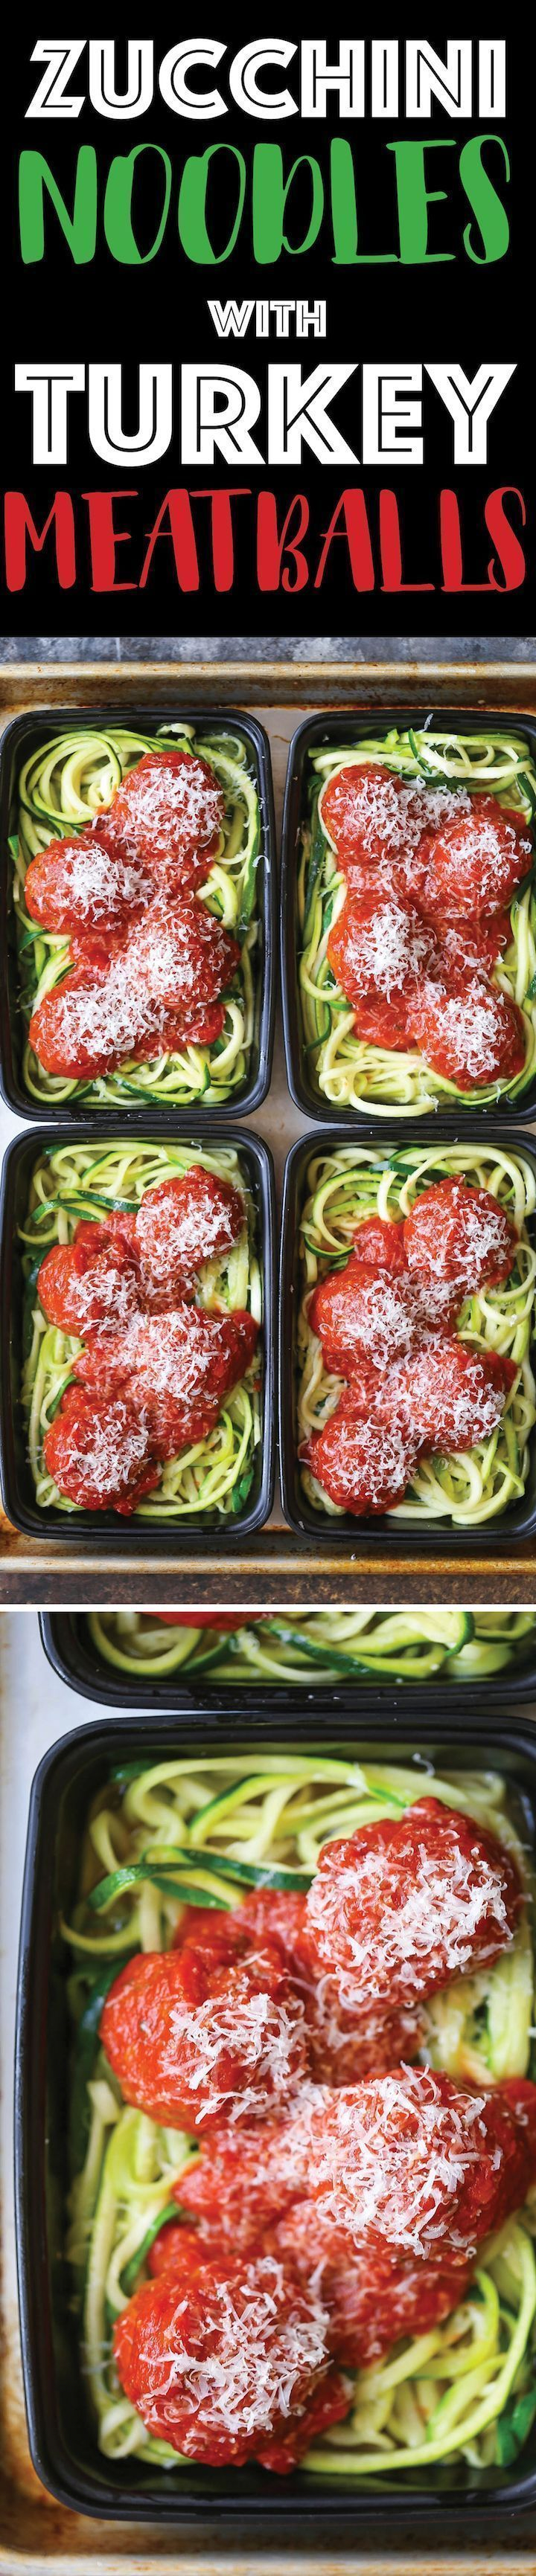 Zucchini Noodles with Turkey Meatballs - These make-ahead meal prep boxes will make you forget all about pasta. It's light, healthy and low carb! #AntiagingAloeVera